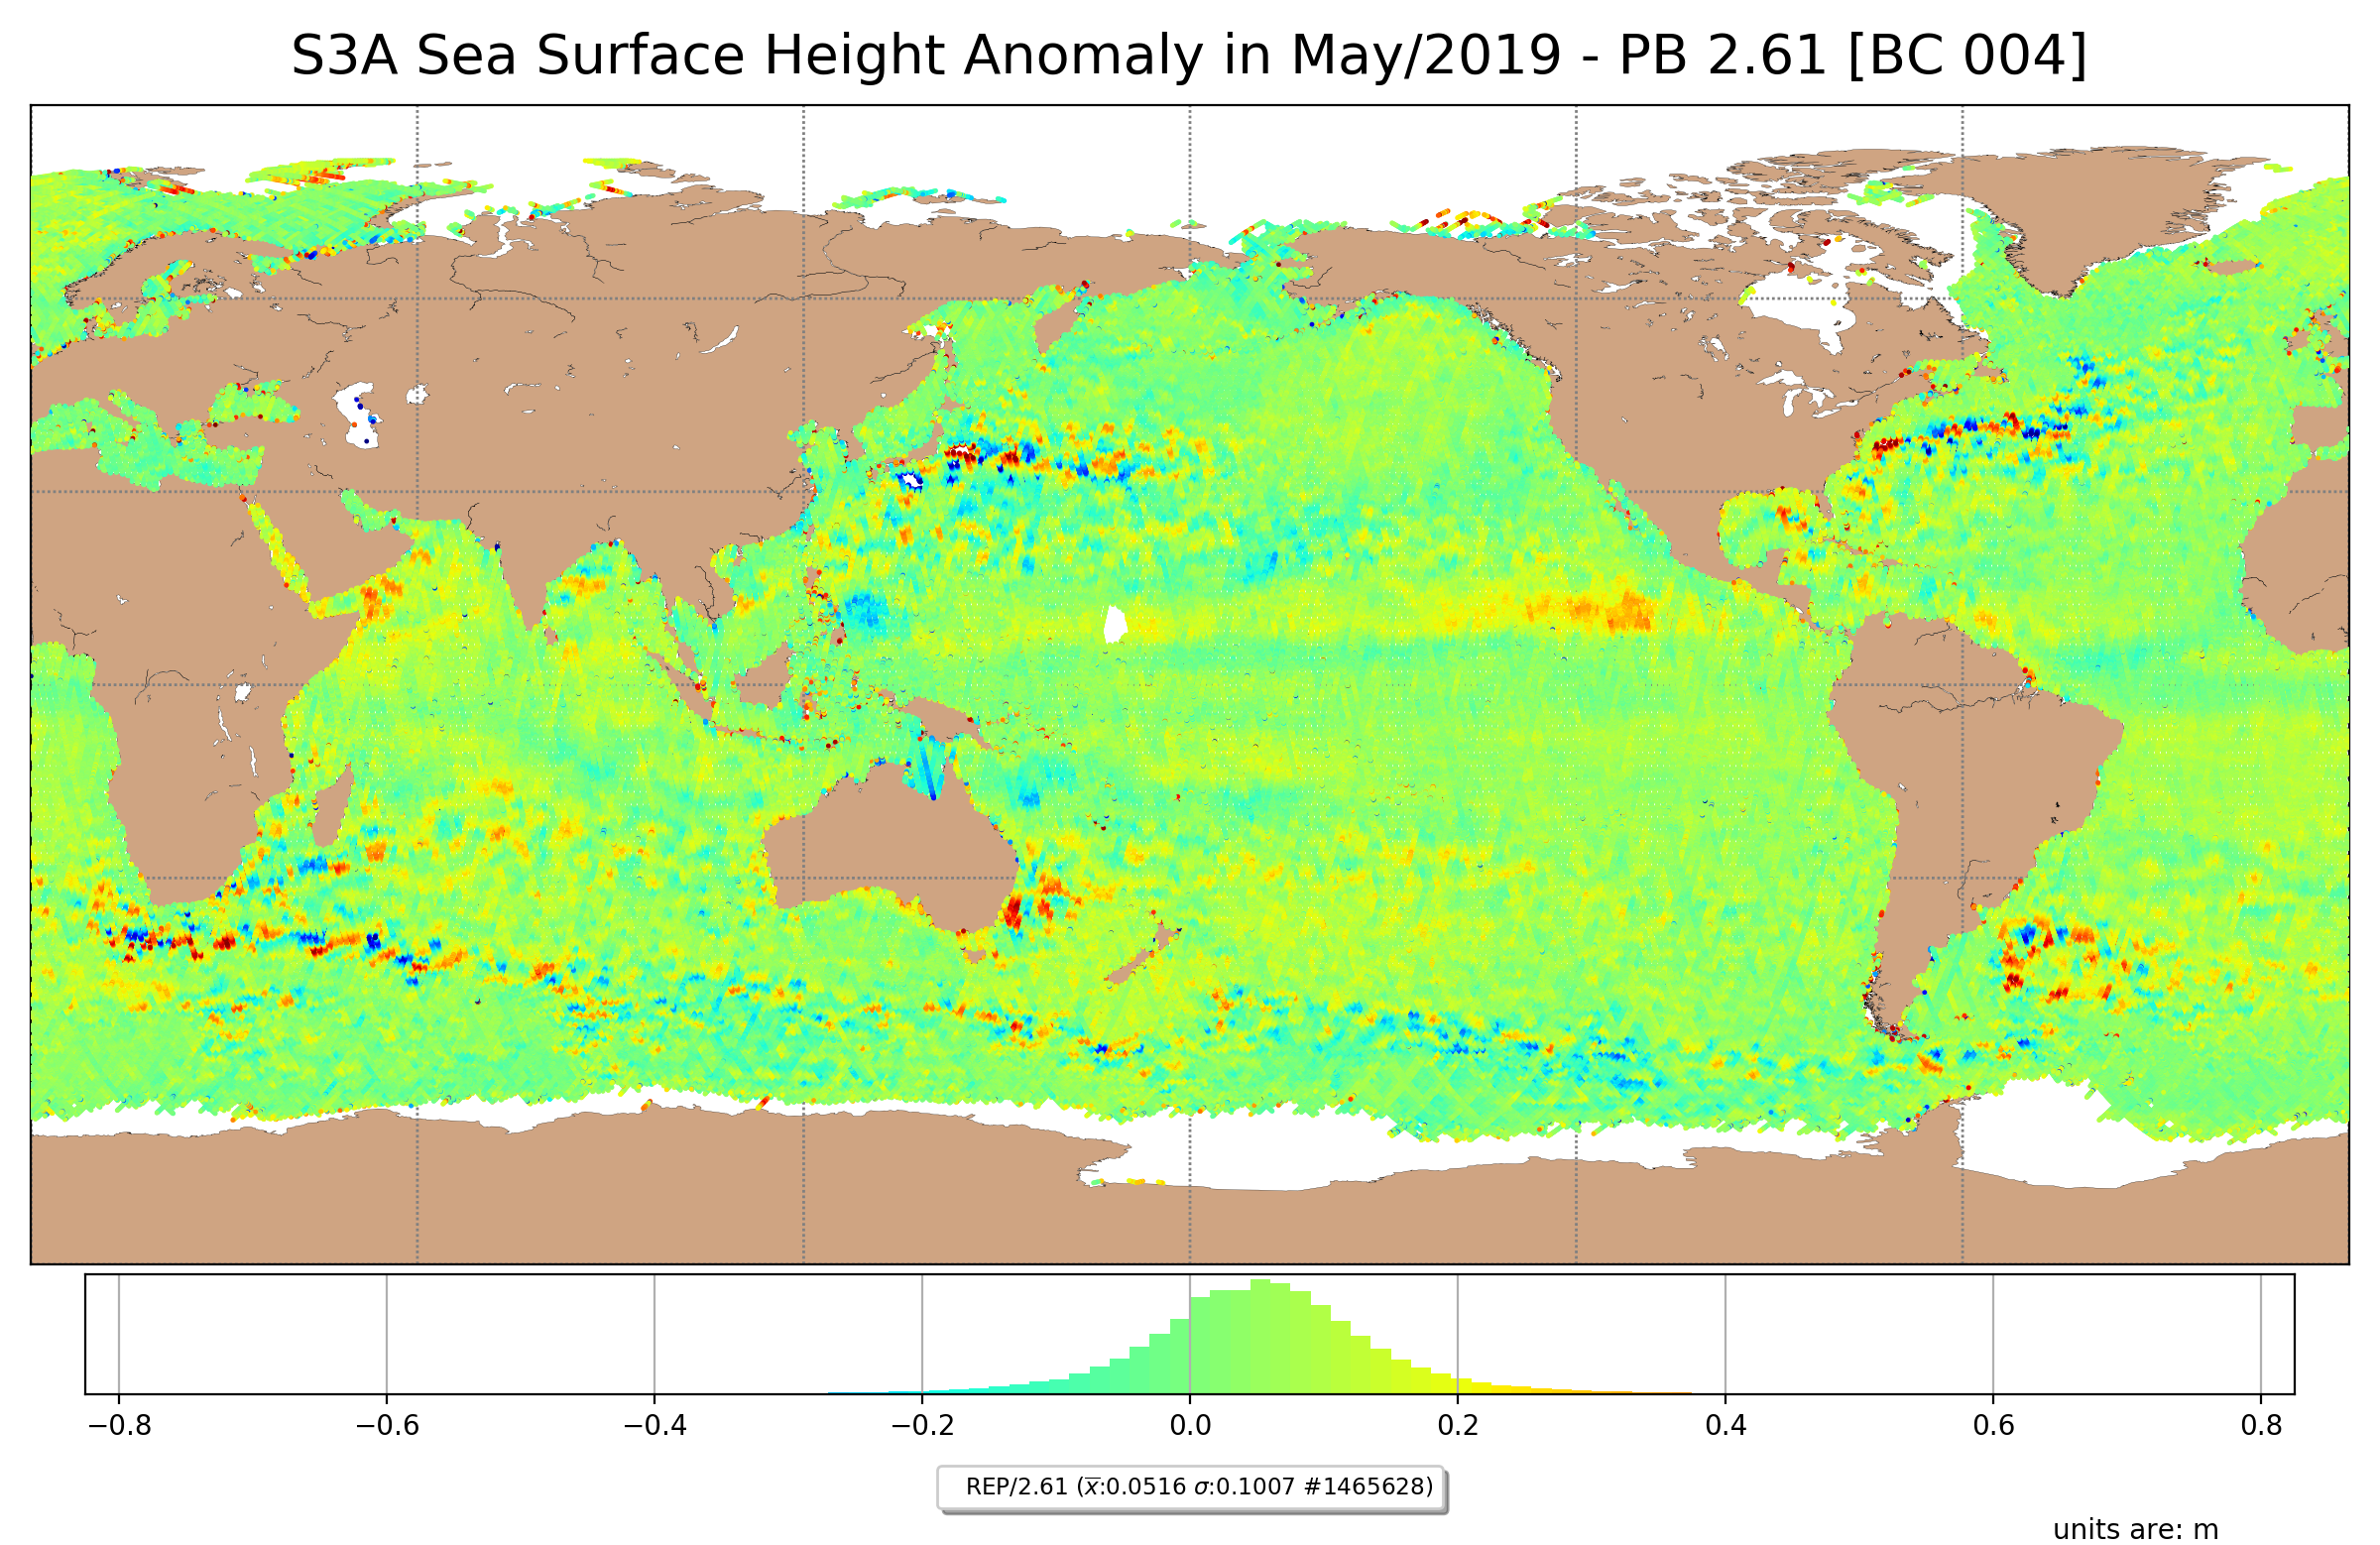 S3A Sea Surface Height Anomaly for May/2019, generated with the new Baseline collection. Data is filtered by SSHA < |0.75|m